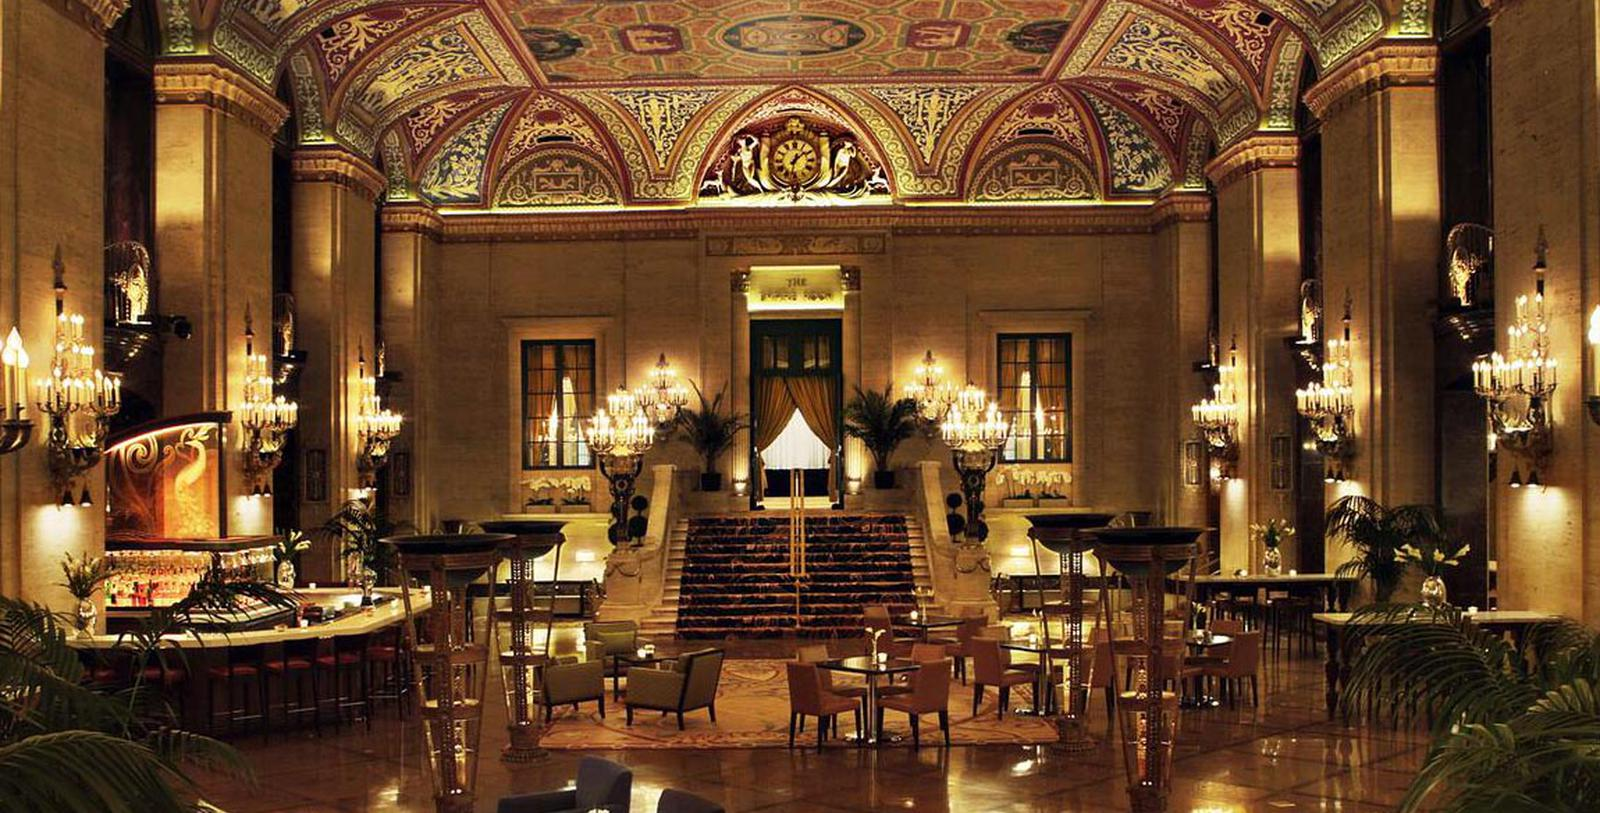 Image of Dining Area in Palmer House, A Hilton Hotel, Member of Historic Hotels of America, in Chicago, Illinois, Special Offers, Discounted Rates, Families, Romantic Escape, Honeymoons, Anniversaries, Reunions